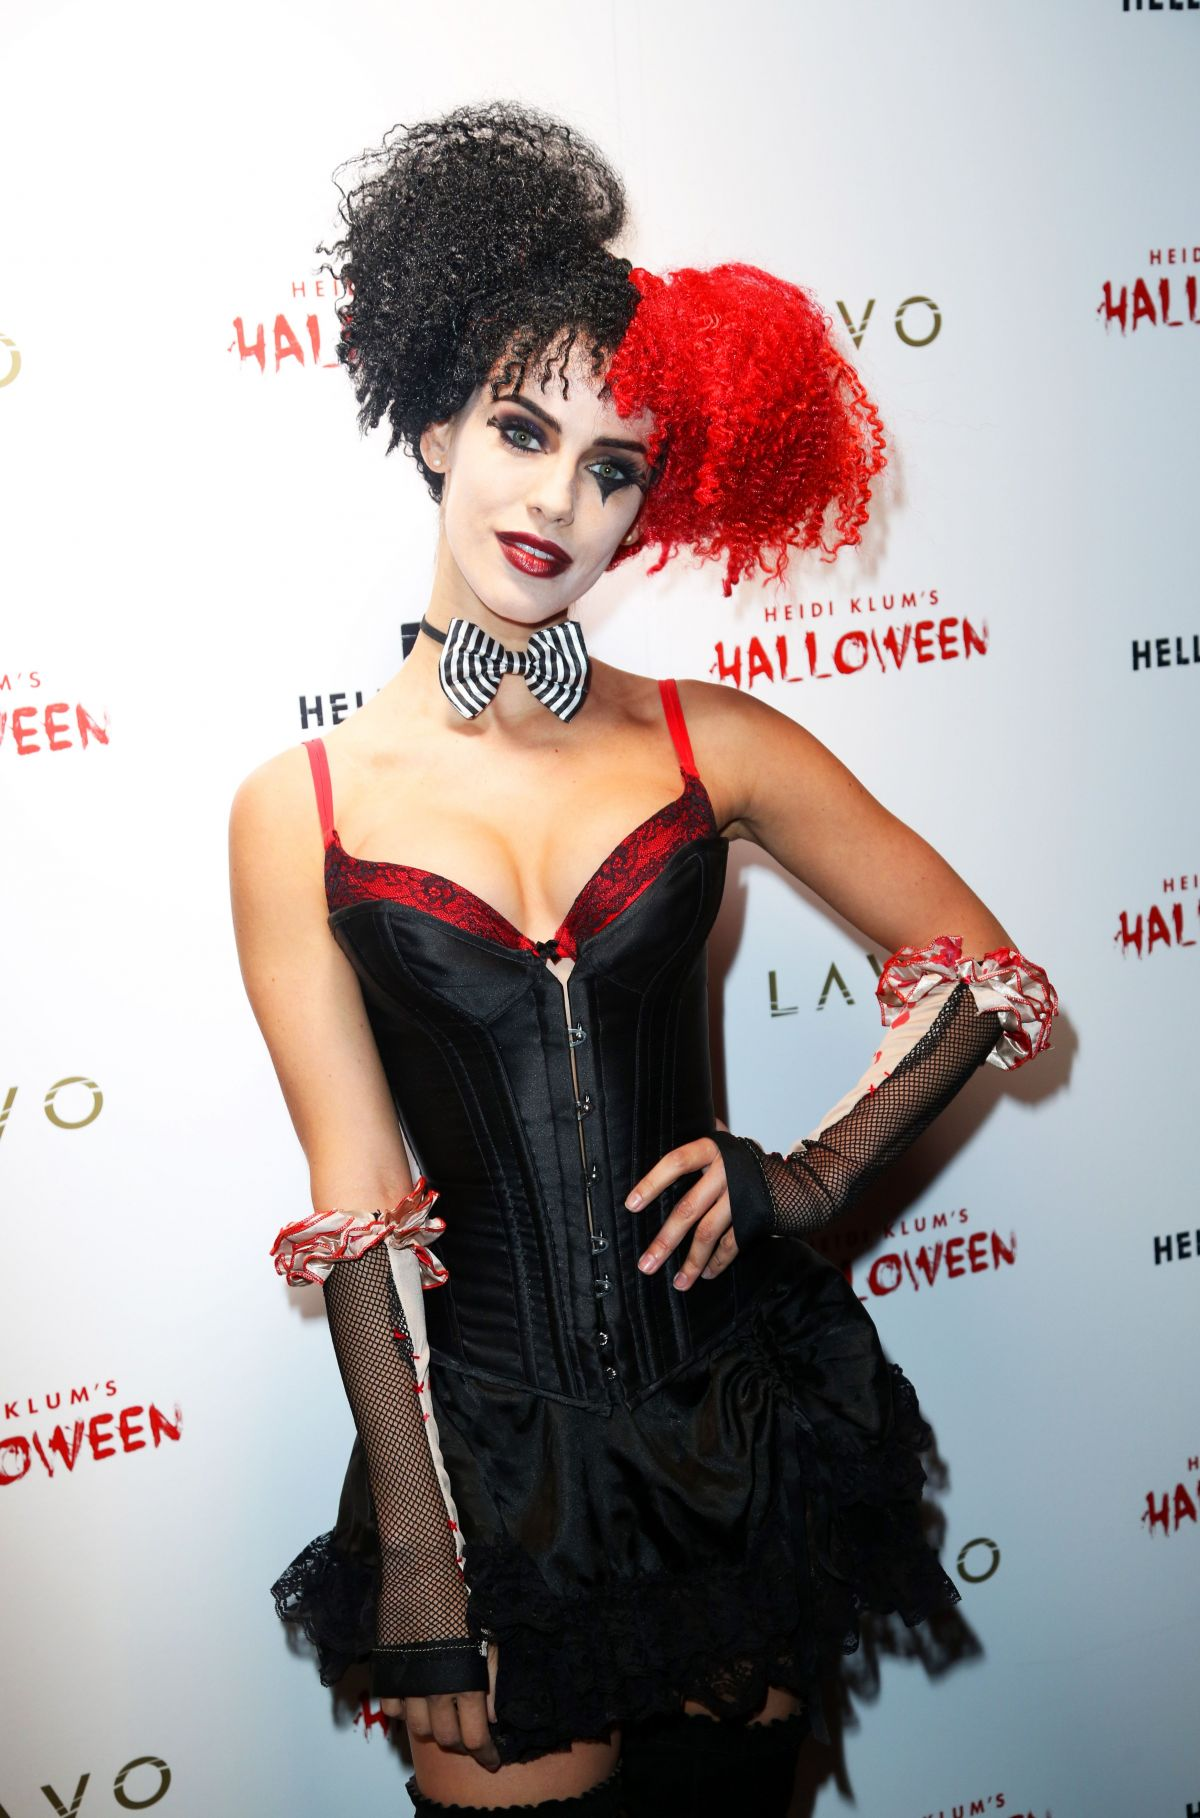 JESSICA LOWNDES at Heidi Klum Halloween Party in New York 10/31 ...